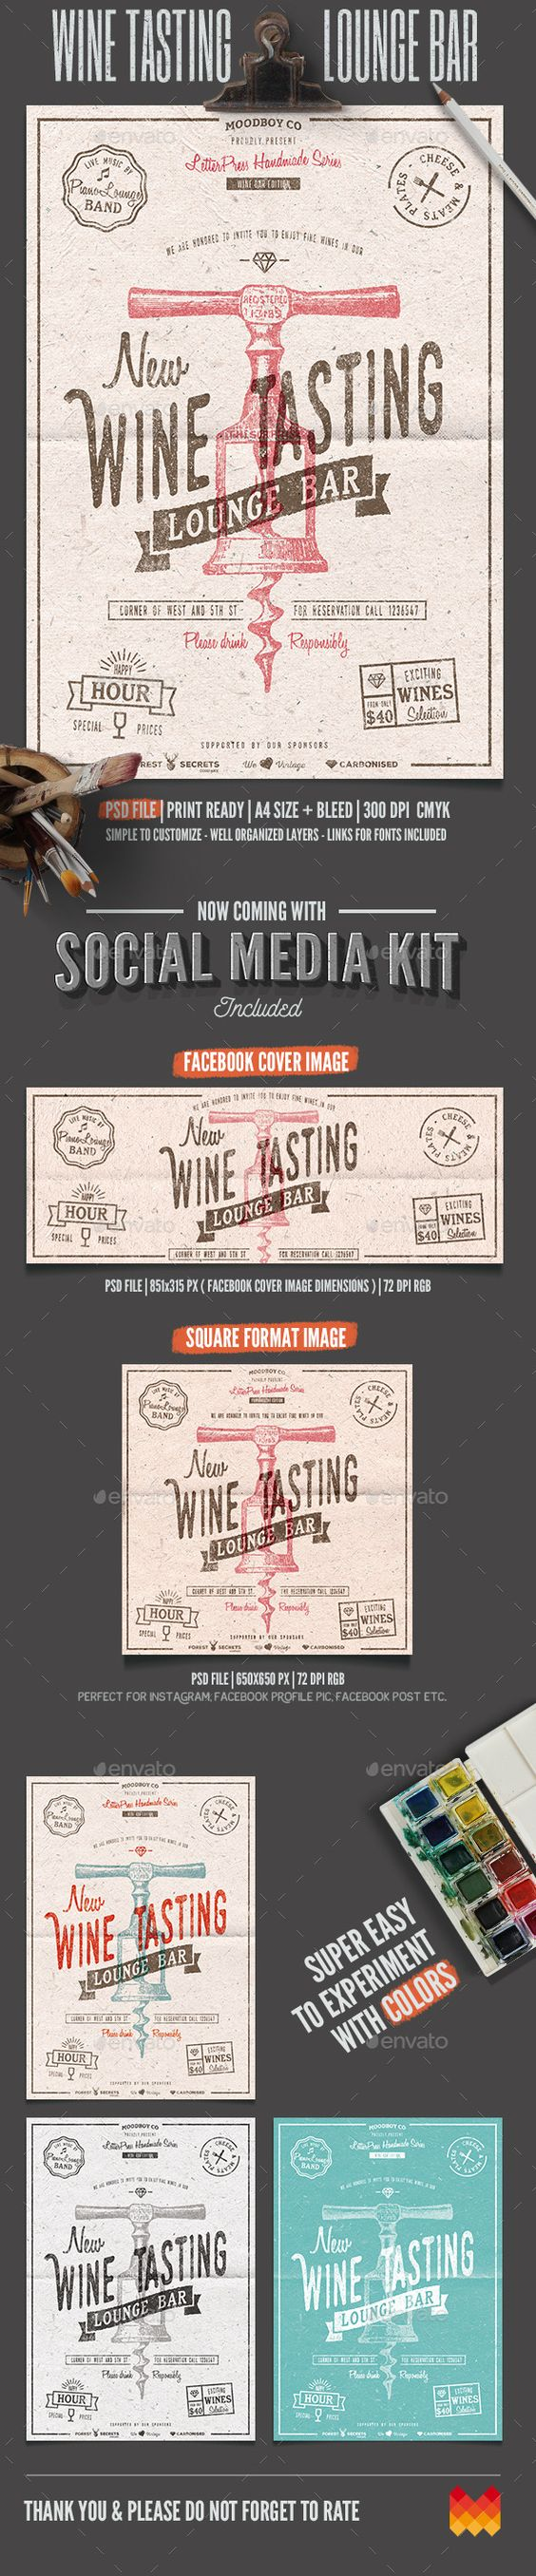 wine tasting lounge flyer poster old paper paper and wine tasting. Black Bedroom Furniture Sets. Home Design Ideas